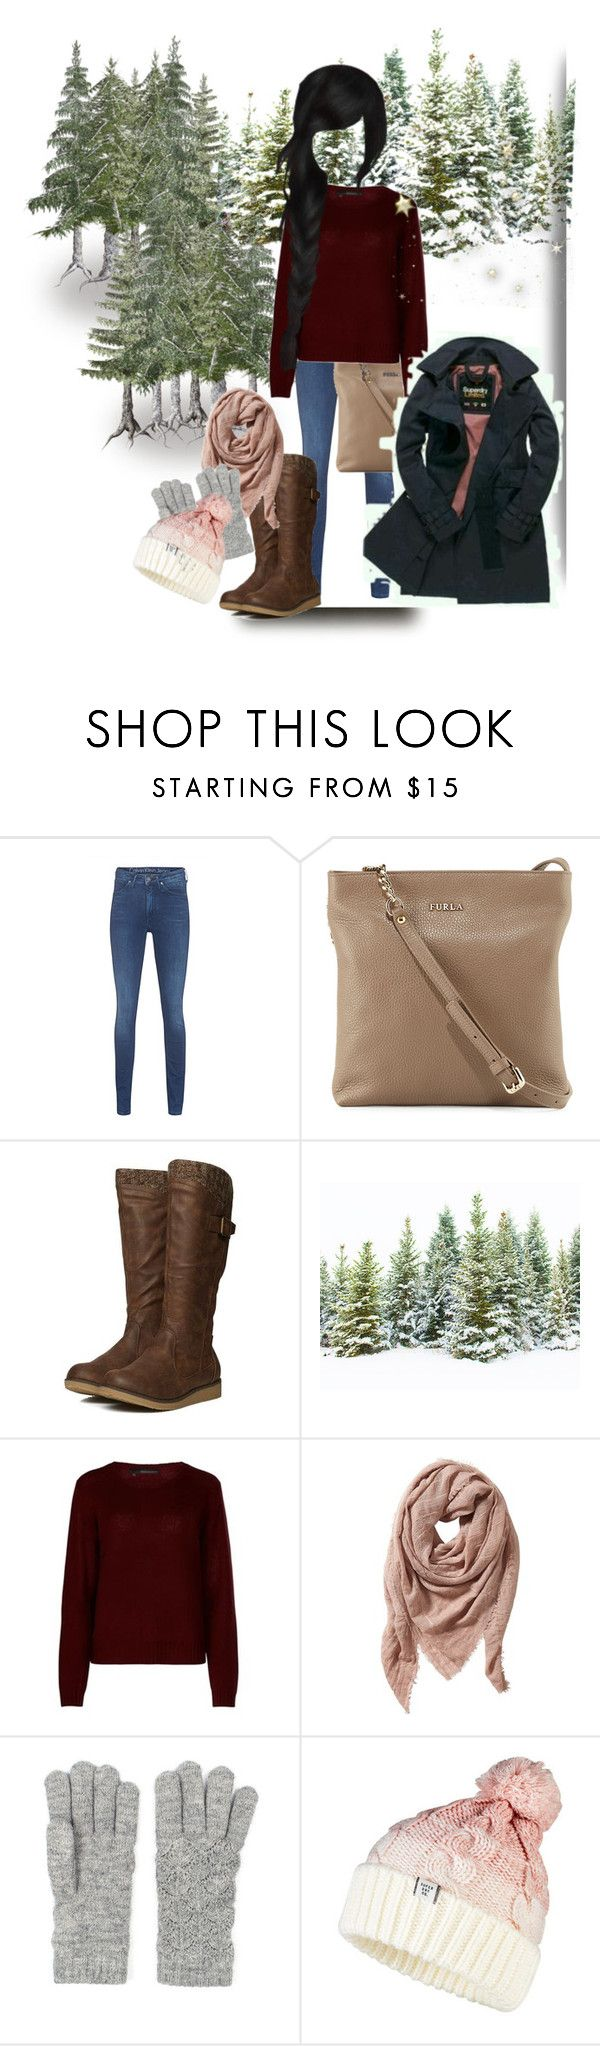 """""""Winter outfit"""" by maryann-bunt-deile ❤ liked on Polyvore featuring Calvin Klein Jeans, Furla, 360cashmere, TravelSmith and Superdry"""